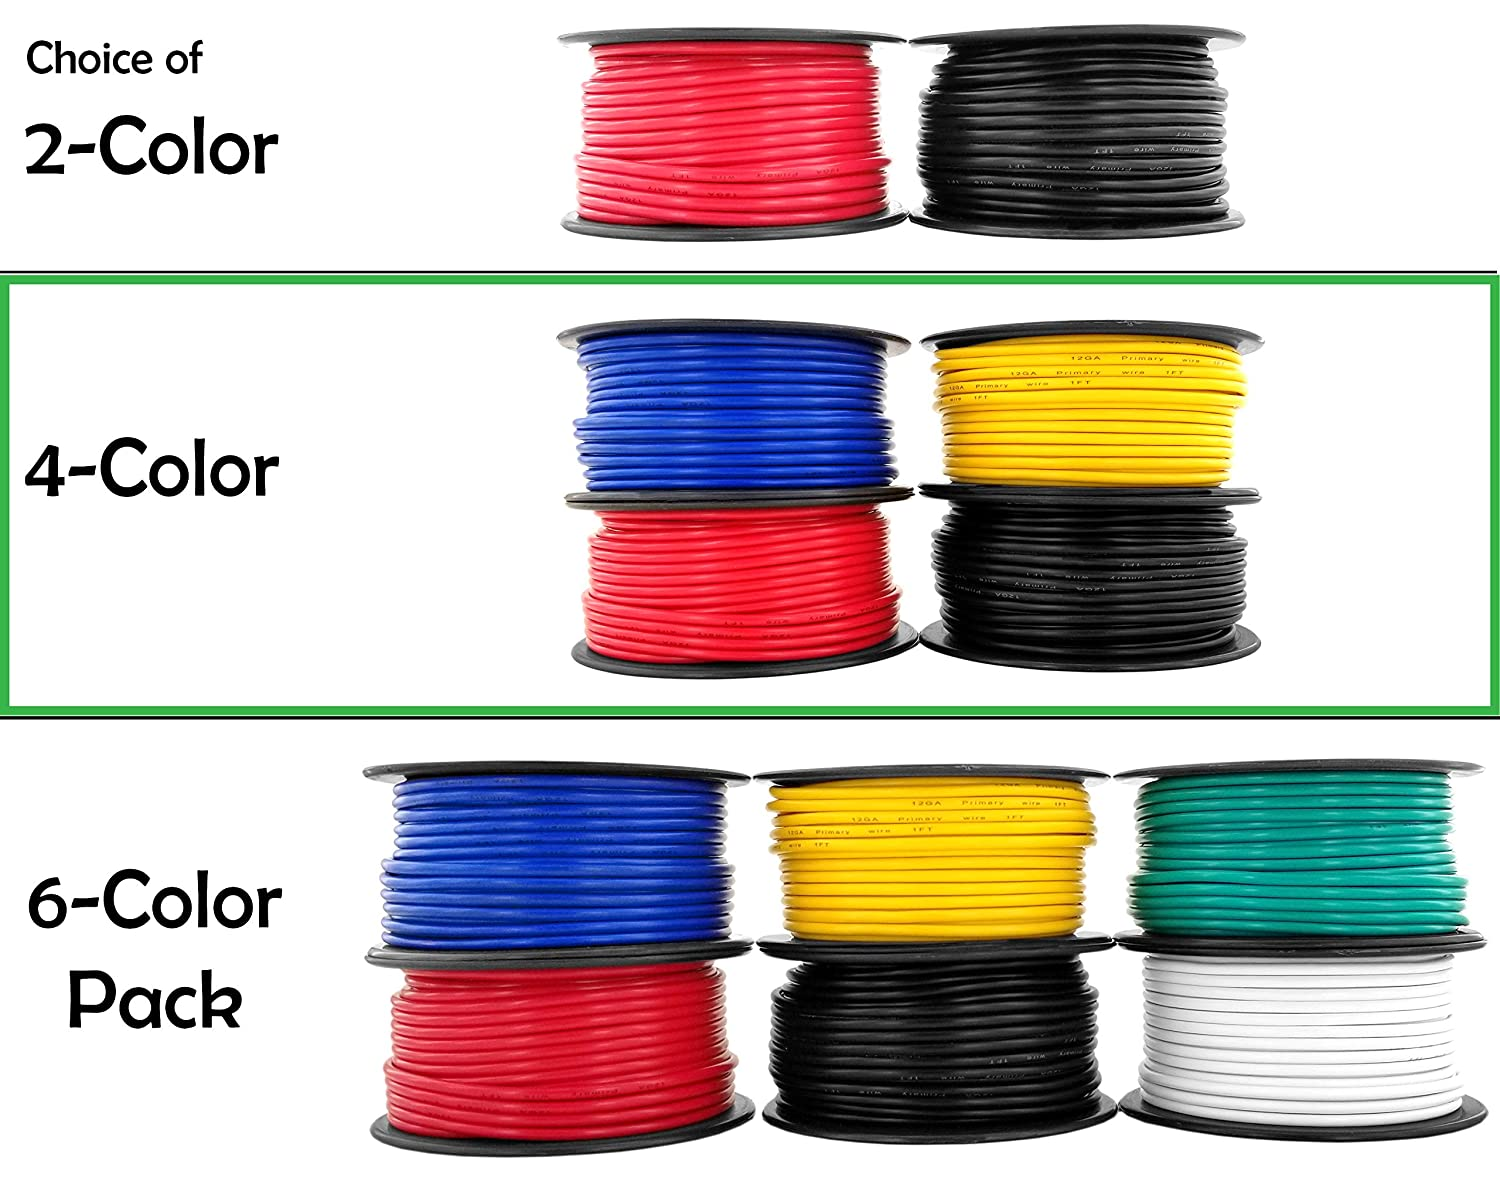 12 Gauge Copper Clad Aluminum Low Voltage Primary Wire 4 Color Combo 100 ft per Roll (400 feet Total) for 12V Automotive Trailer Light Car Audio Stereo Harness Wiring (Also in 2 or 6 Color Combo) 81SOkaaBn0L